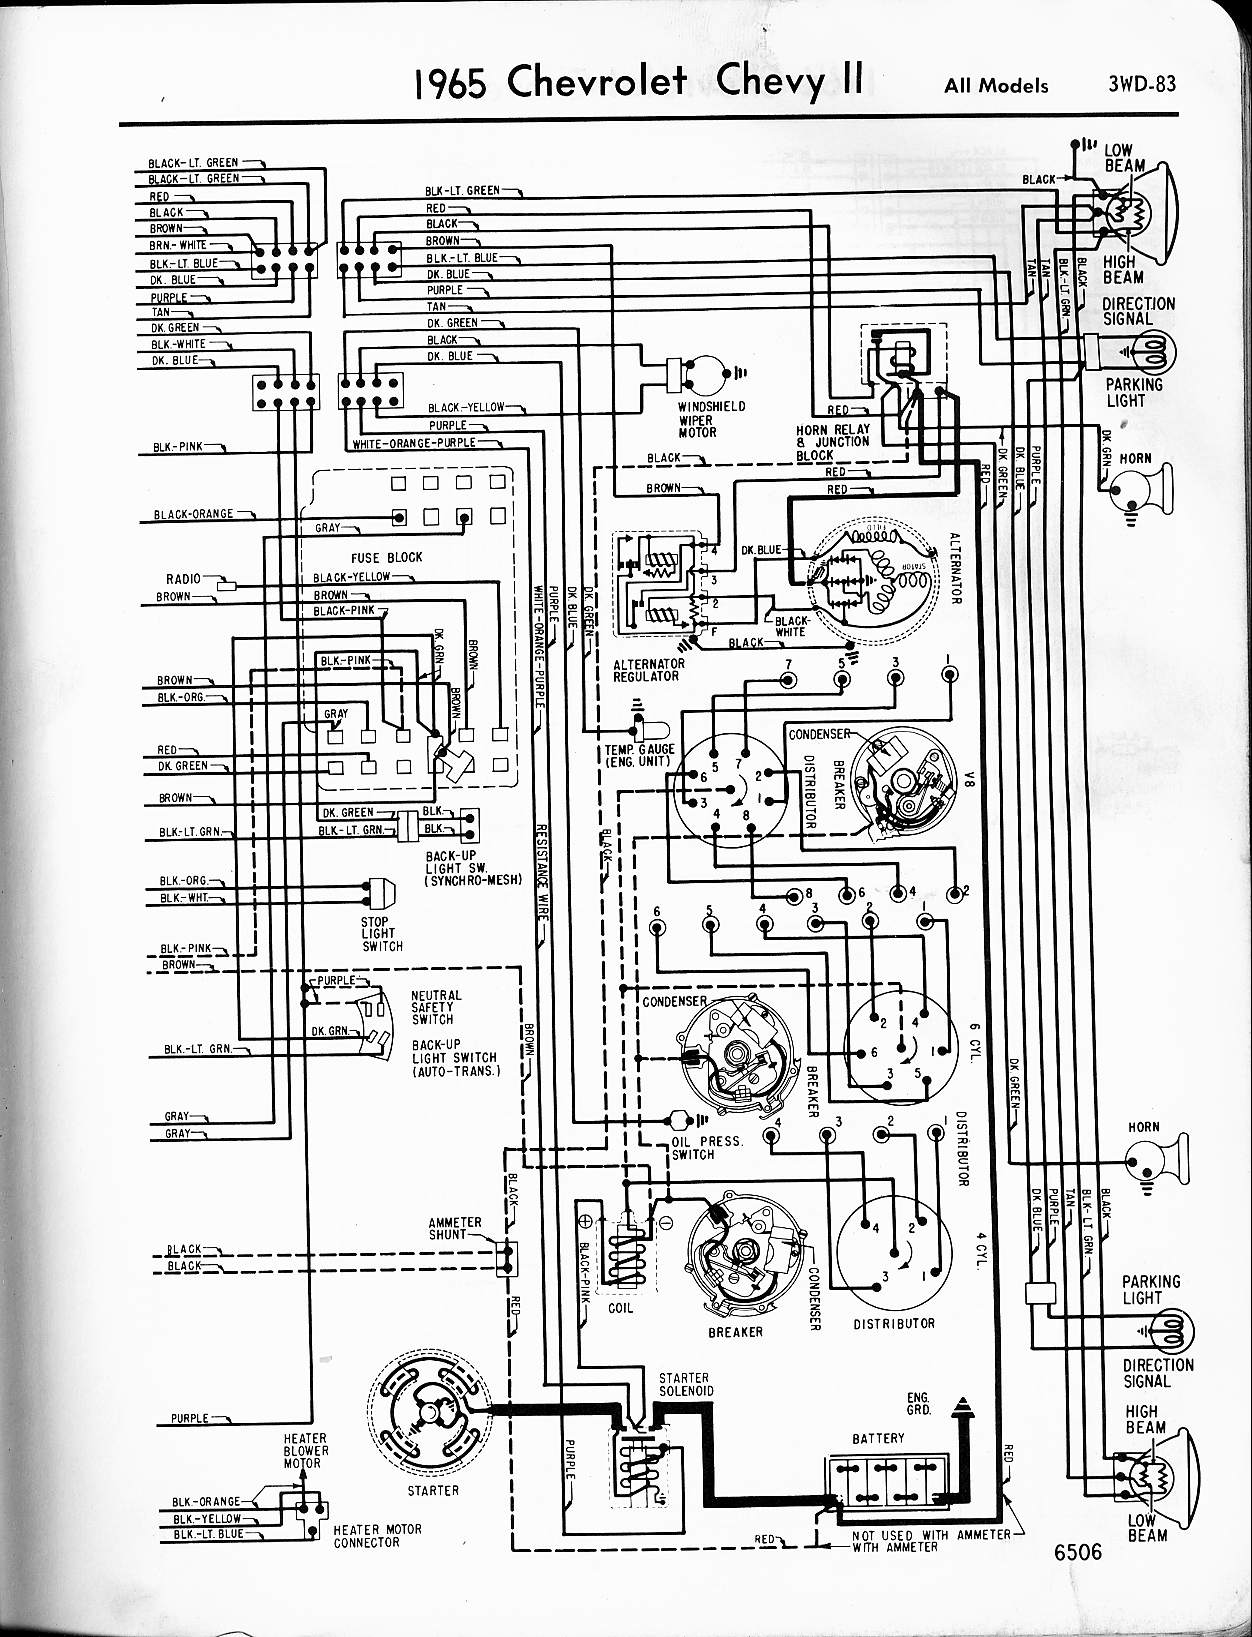 MWireChev65_3WD 083 chevy diagrams 1985 Chevy Truck Wiring Harness at fashall.co